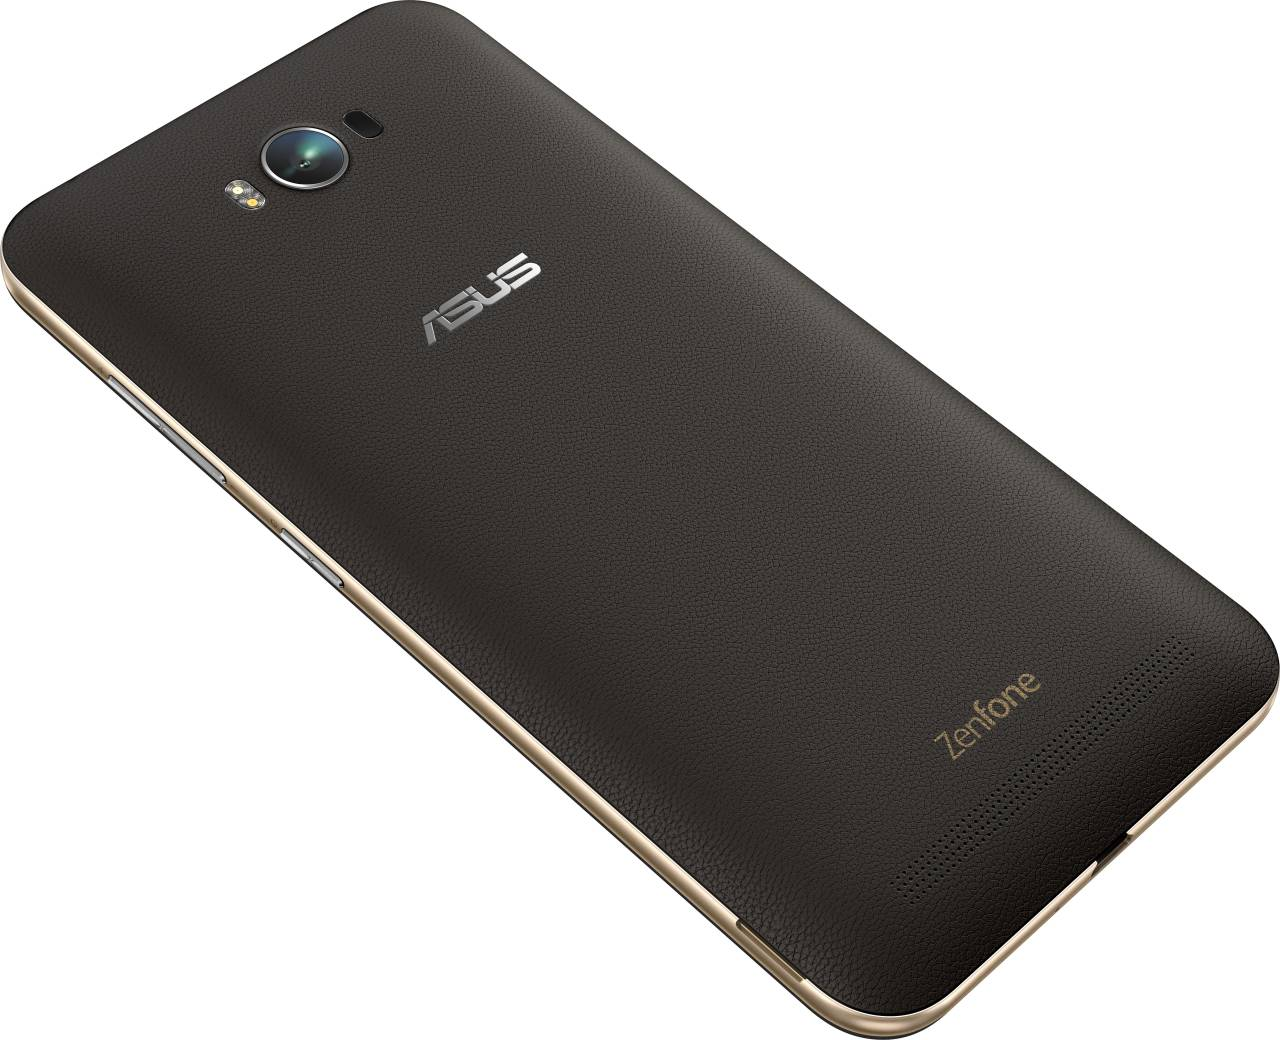 Asus Zenfone Max Zc550kl Black 32 Gbwith 3 Gb Ram 2 32gb Tap To Expand